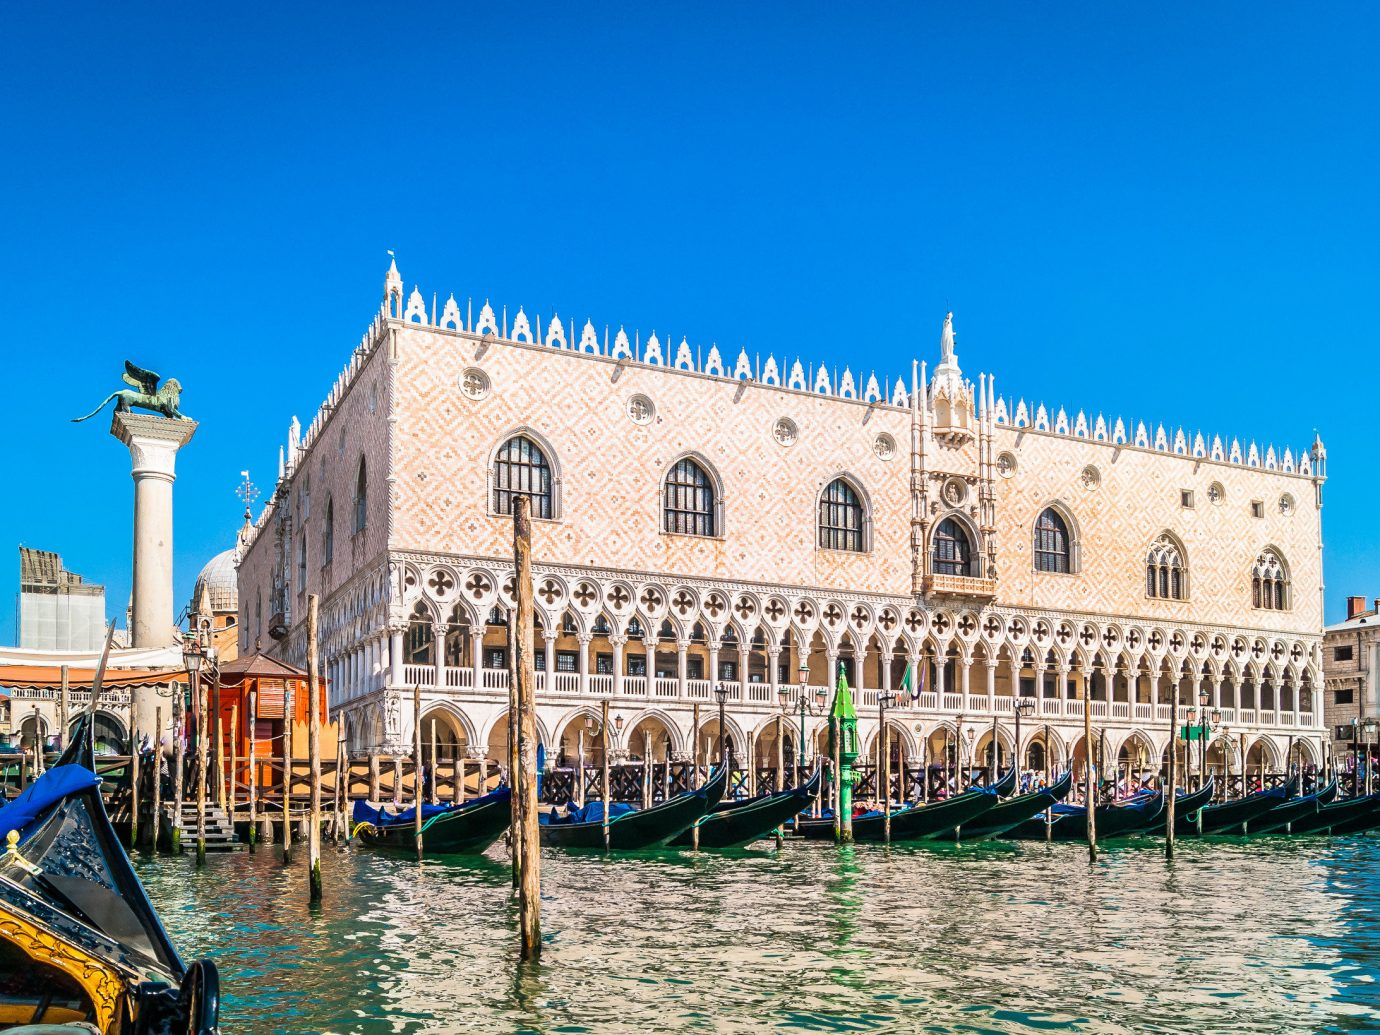 Trip Ideas building sky outdoor water waterway landmark palace gondola tourist attraction watercraft tourism City Boat Sea facade Canal channel Harbor old stone